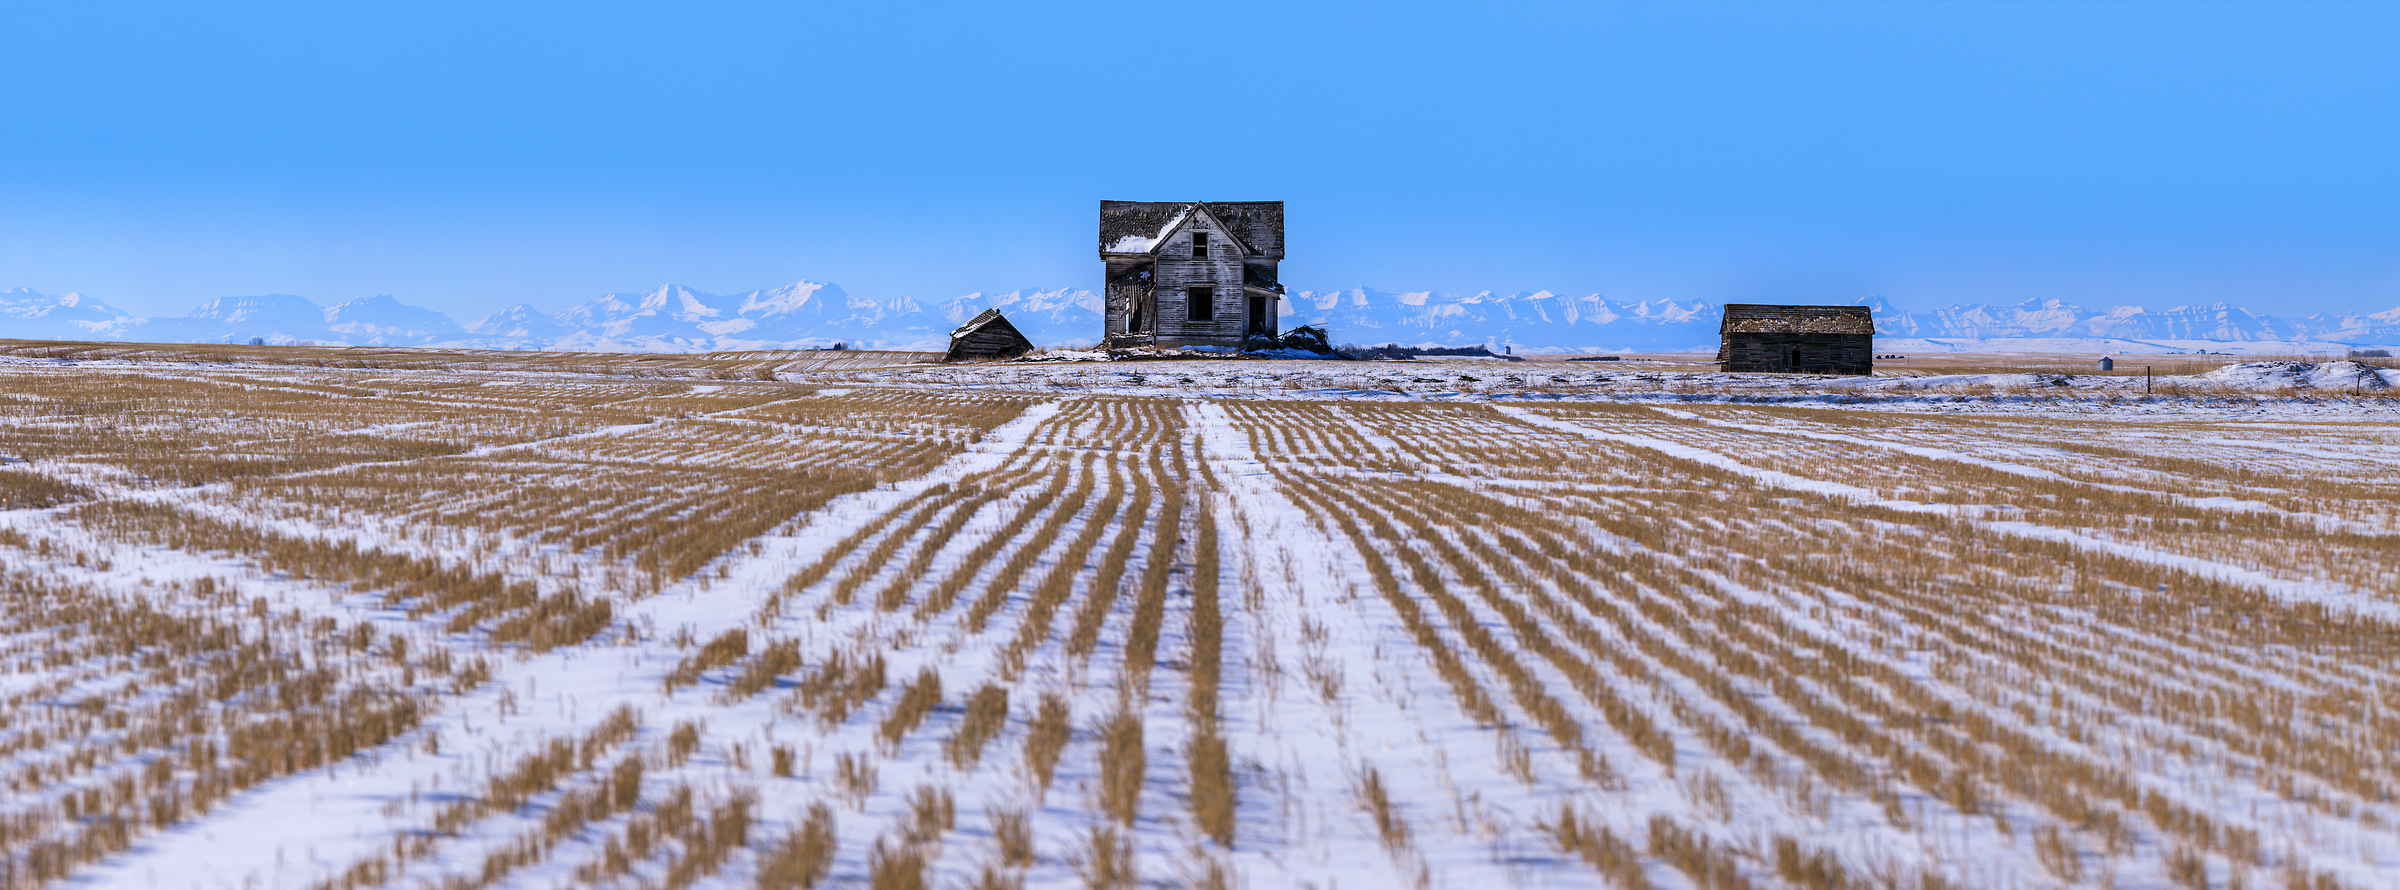 1,052 megapixels! A very high resolution, large-format VAST photo print of an abandoned house in a field on a prairie; landscape photograph created by Scott Dimond in Foothills County, Alberta, Canada